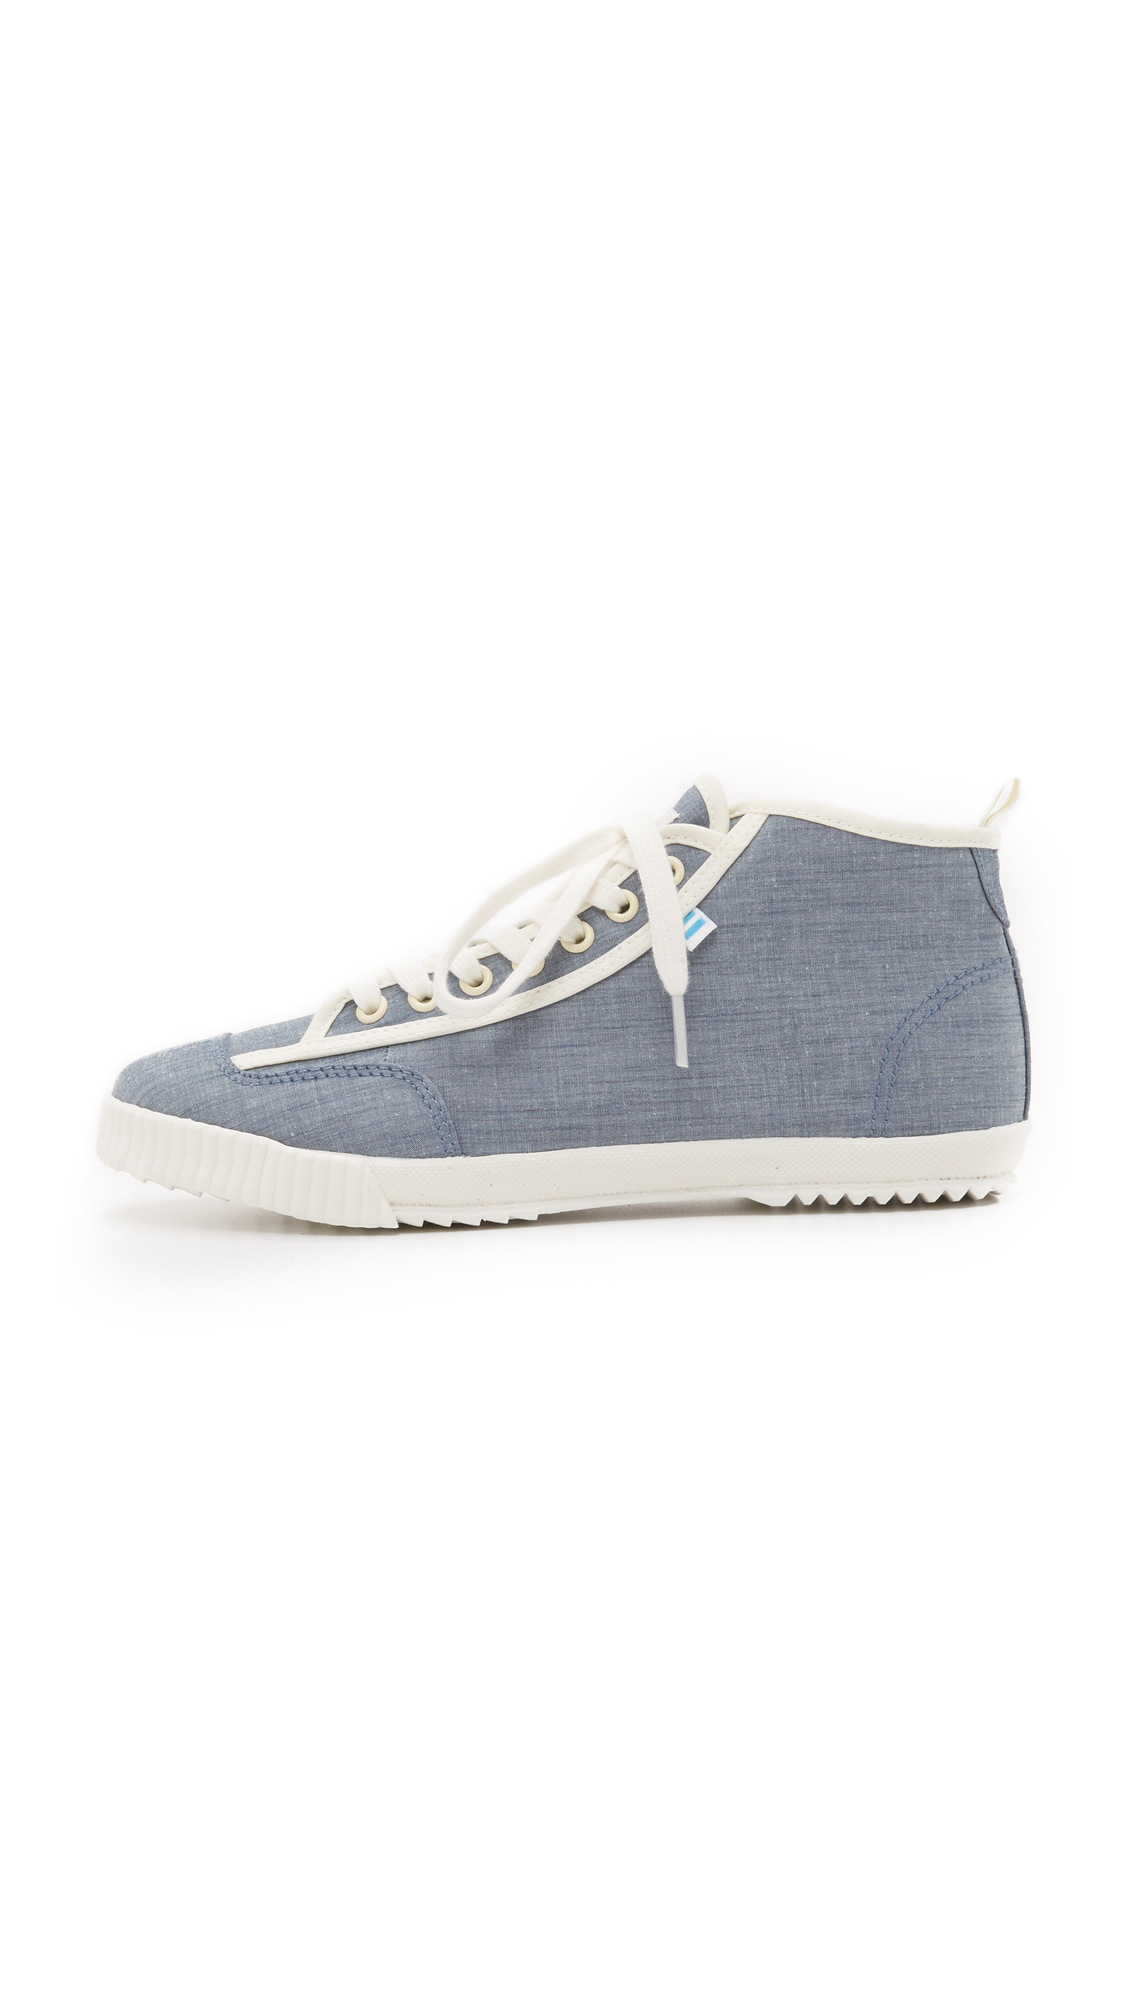 Feiyue Canvas X Solid & Striped Candice Sneakers in White